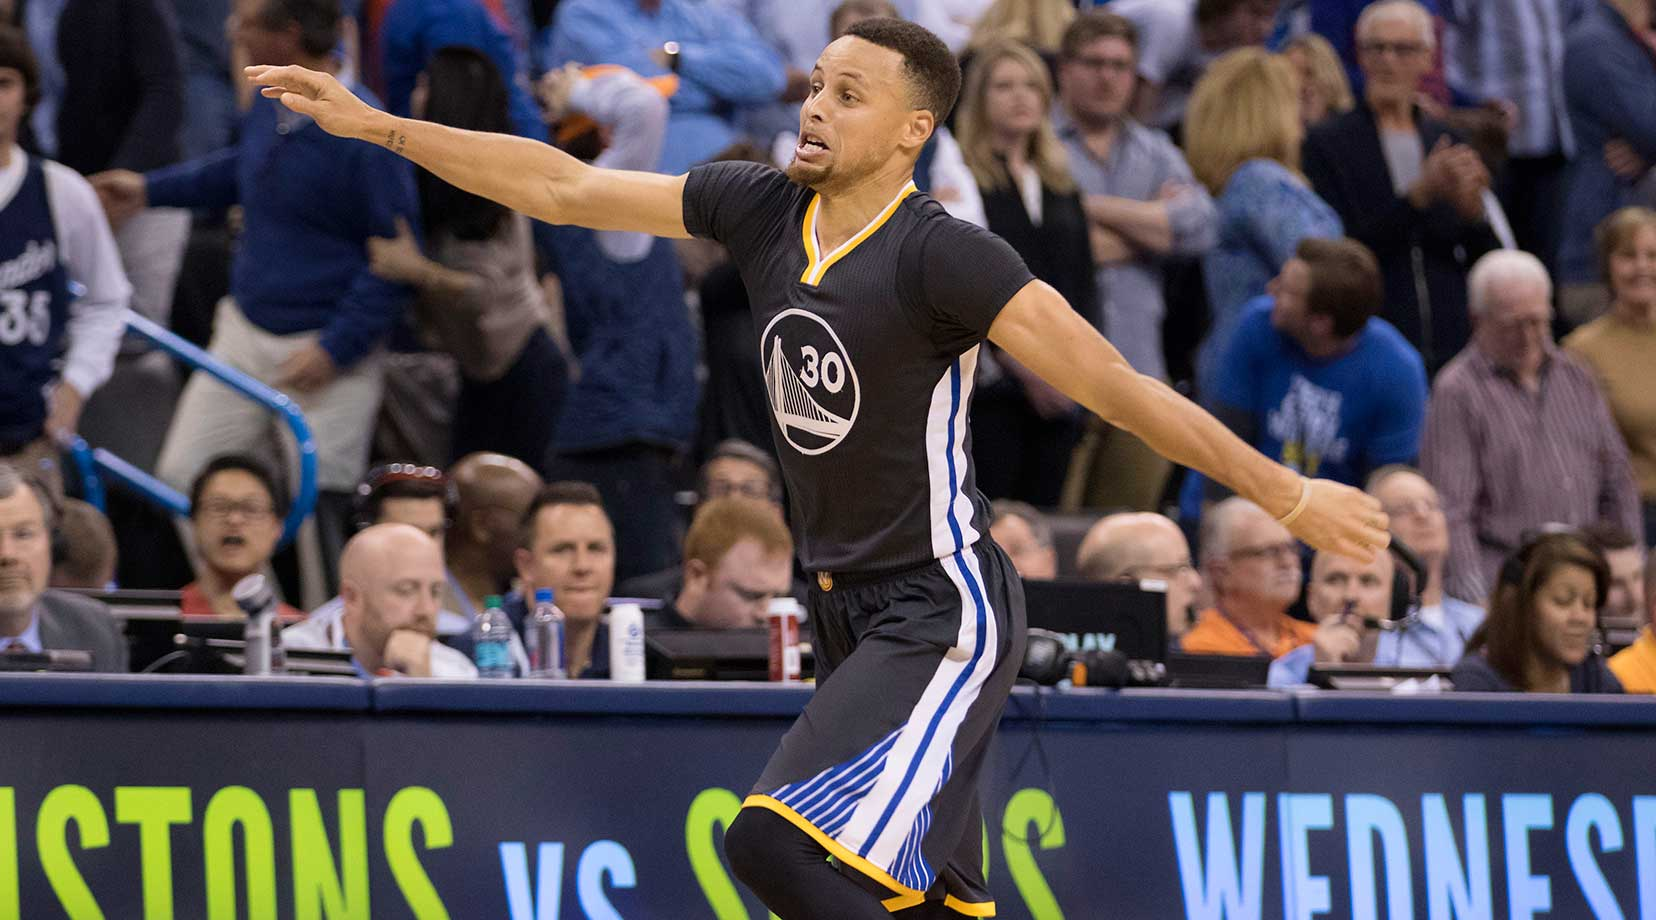 Steph Curry celebrates his game-winning shot, the 12th three-pointer he made in the game, tying an NBA record.